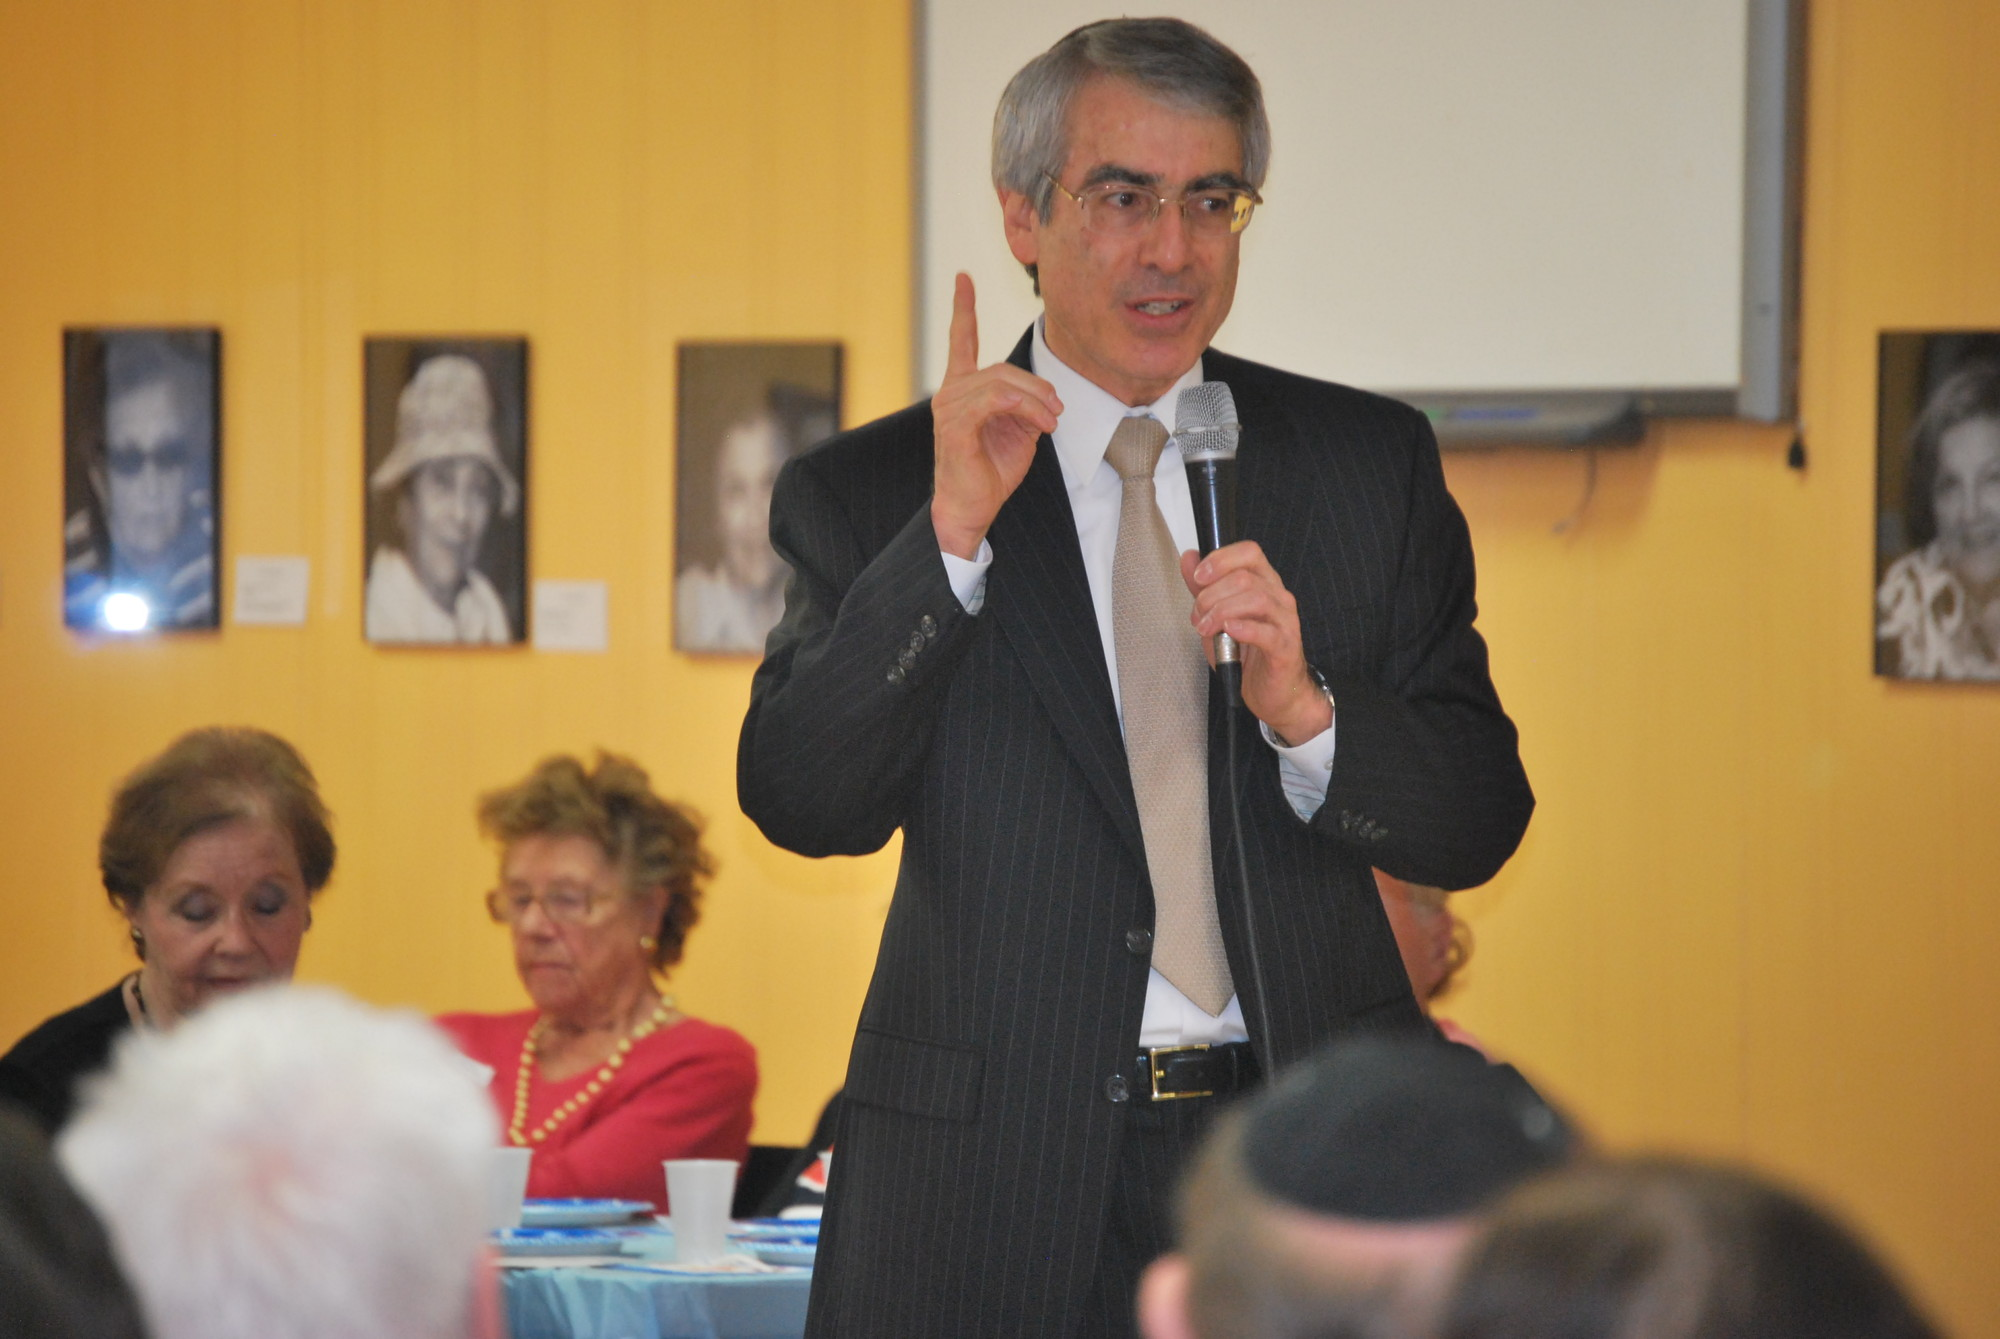 Rabbi Bruce Ginsburg of  Congregation Sons of Israel spoke to the Holocaust survivors at the JCC party.